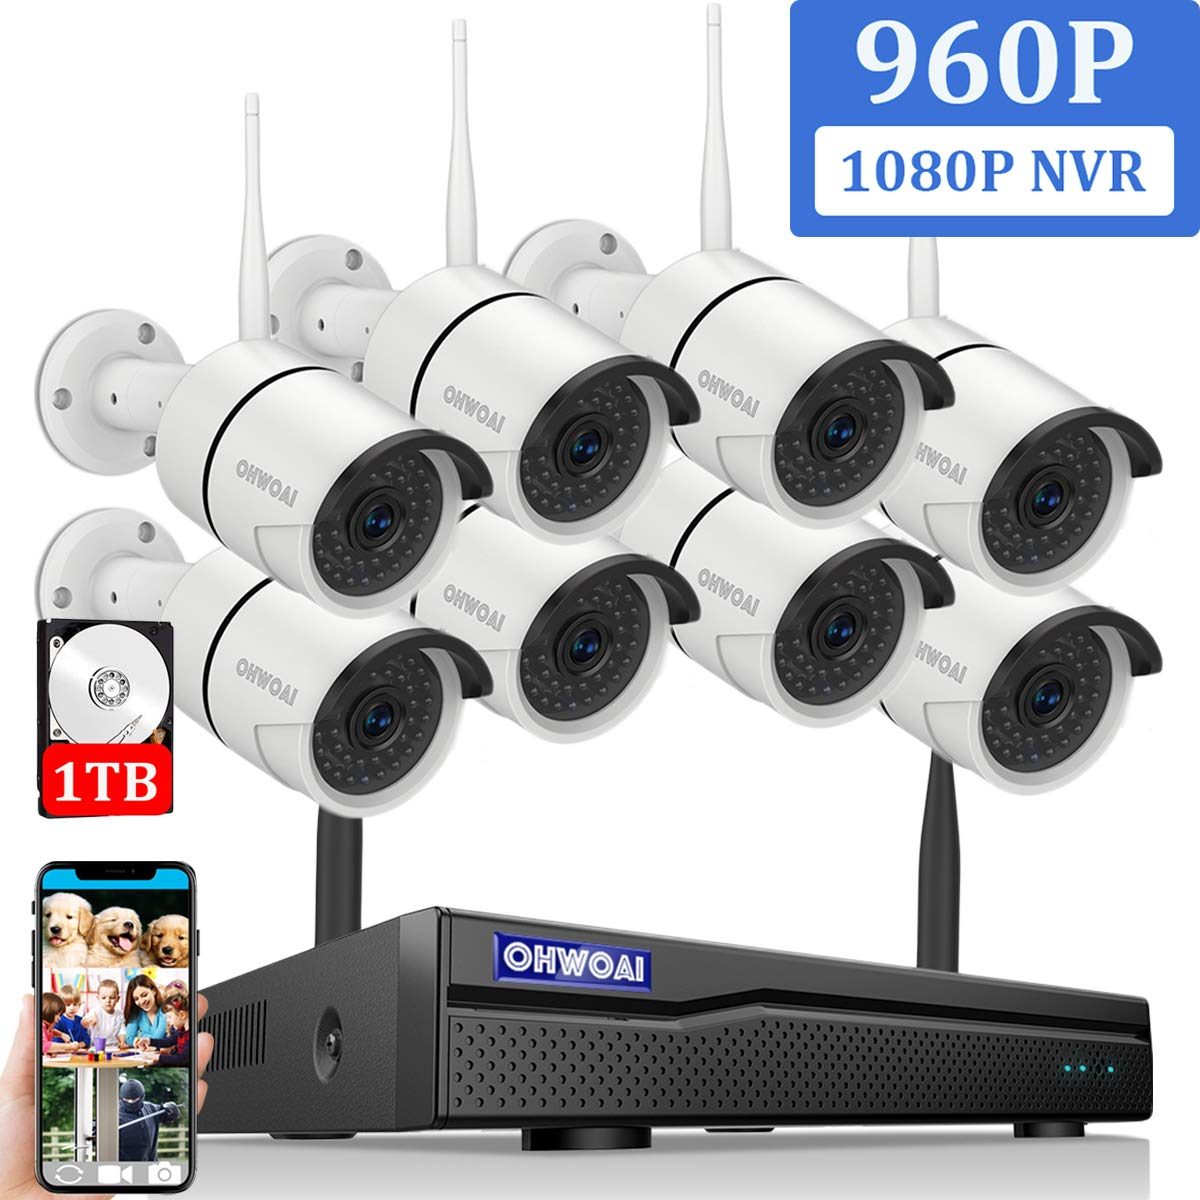 2019 Newest OHWOAI Security Camera System Wireless, 8CH 1080P NVR,8Pcs 960P HD Outdoor Indoor IP Cameras,Home CCTV Surveillance System 1TB Hard Drive Waterproof,Remote Access,Plug Play,Night Vision.